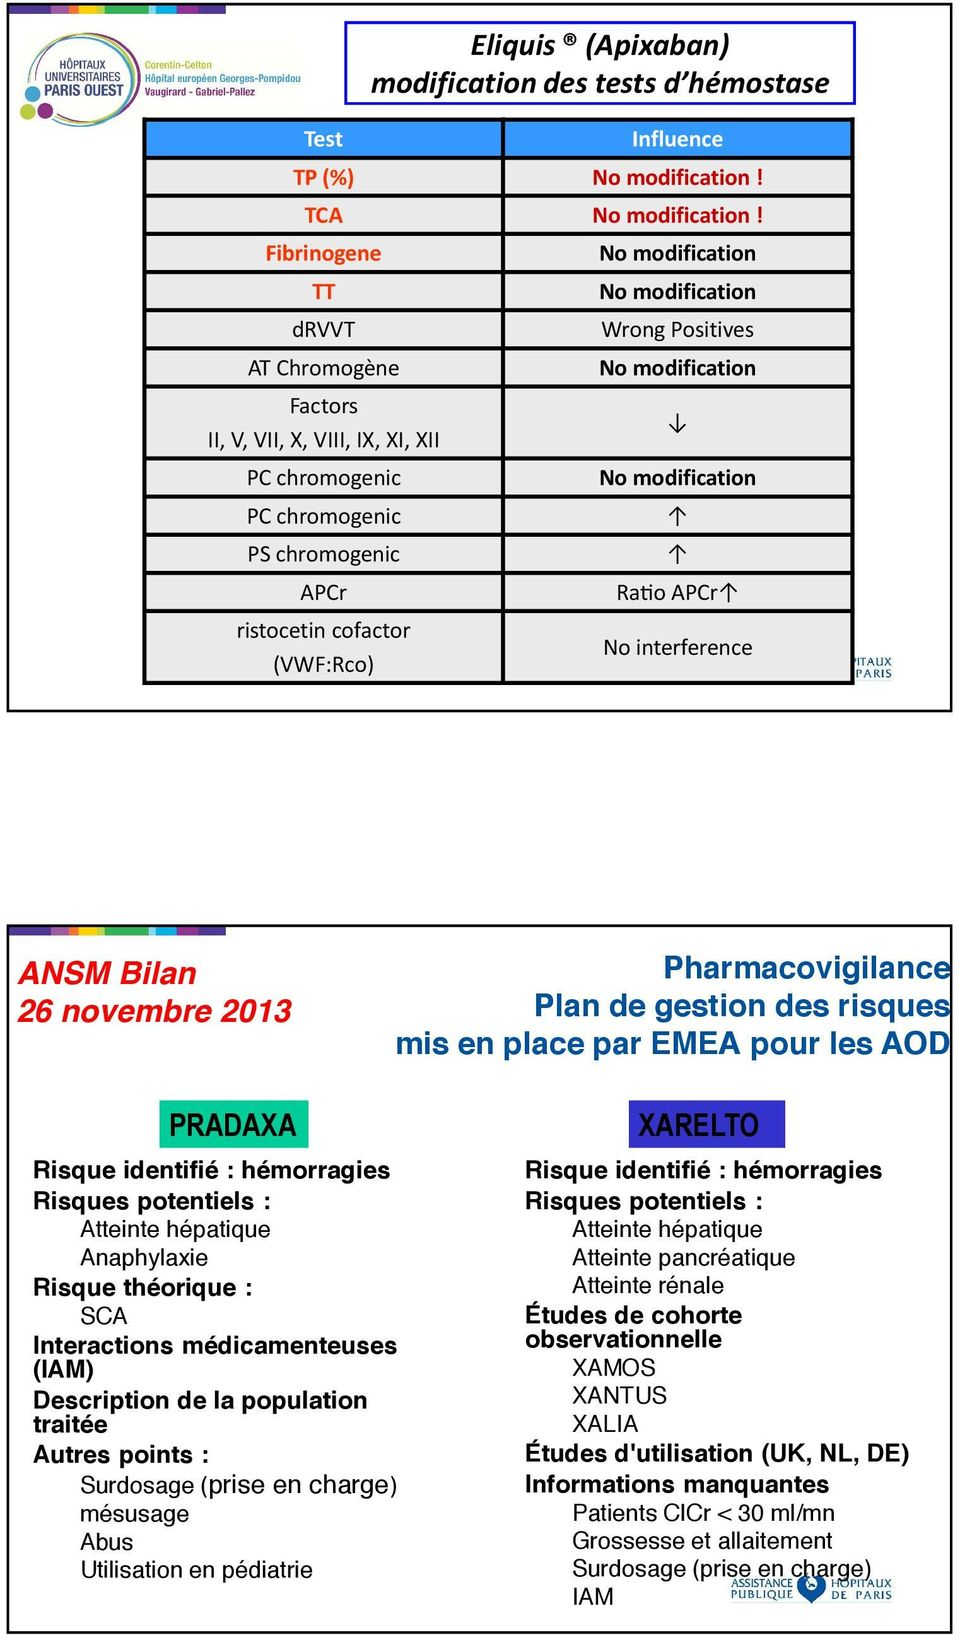 hémostase Wrong Positives Ra-o APCr No interference ANSM Bilan 26 novembre 2013 Pharmacovigilance Plan de gestion des risques mis en place par EMEA pour les AOD PRADAXA Risque identifié : hémorragies